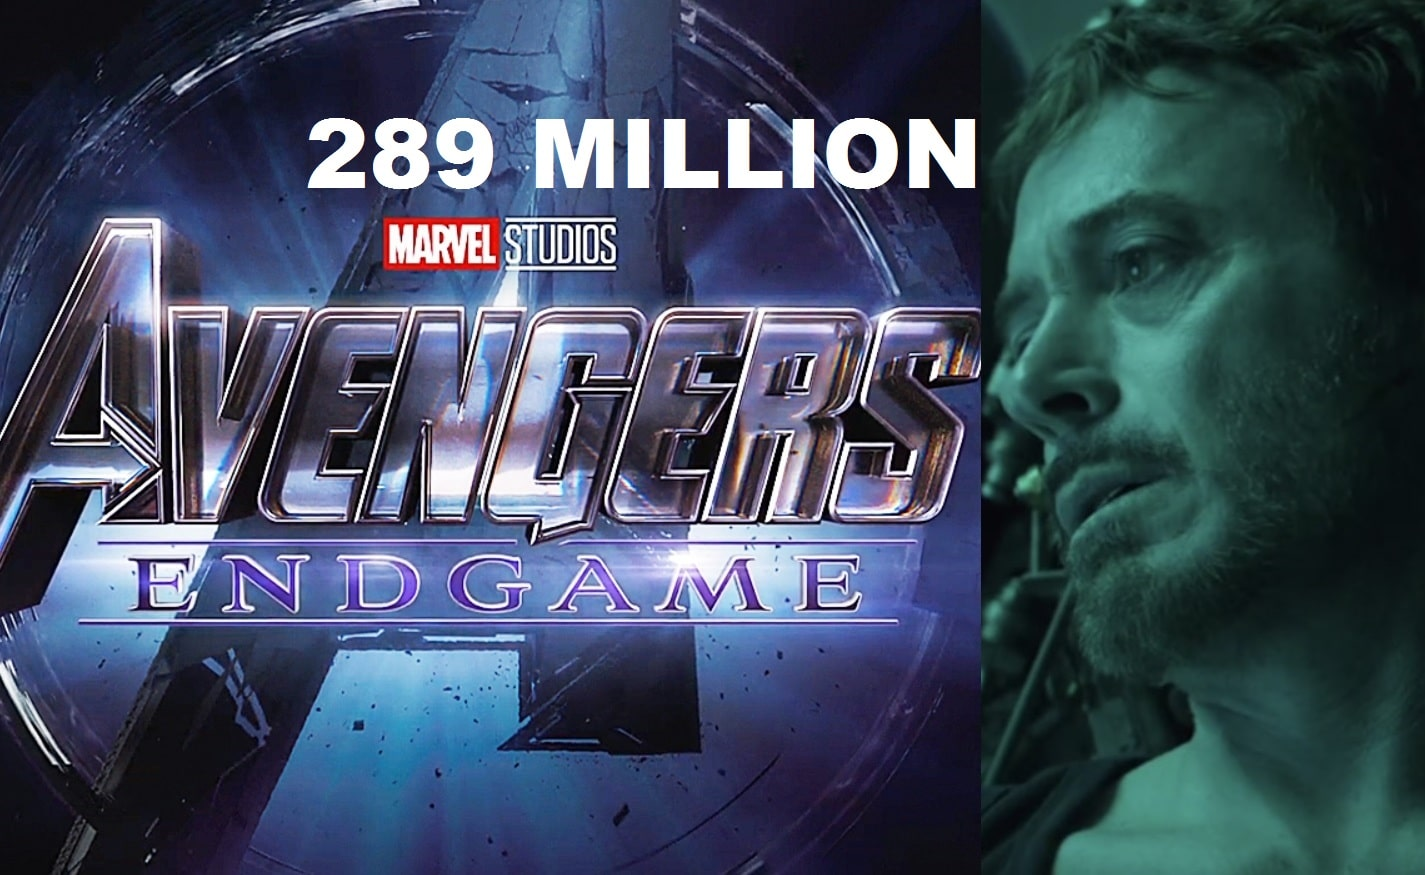 Avengers: Endgame Trailer Creates New Record with 289 Million Views in 24 Hours!